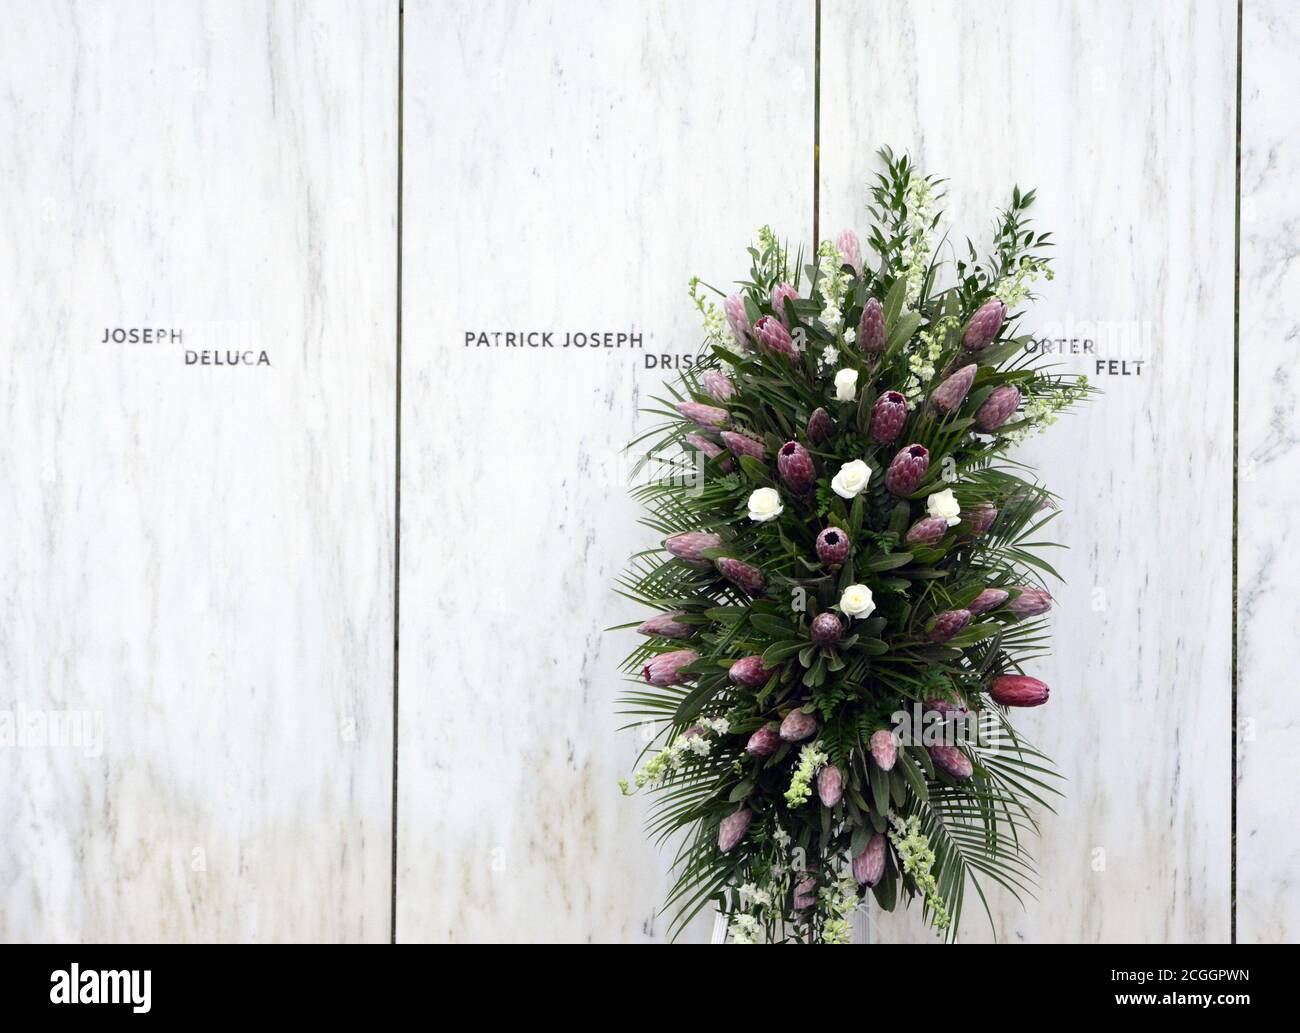 When Does United Release Christmas 2020 Flights? Pittsburgh, United States. 11th Sep, 2020. A floral display along